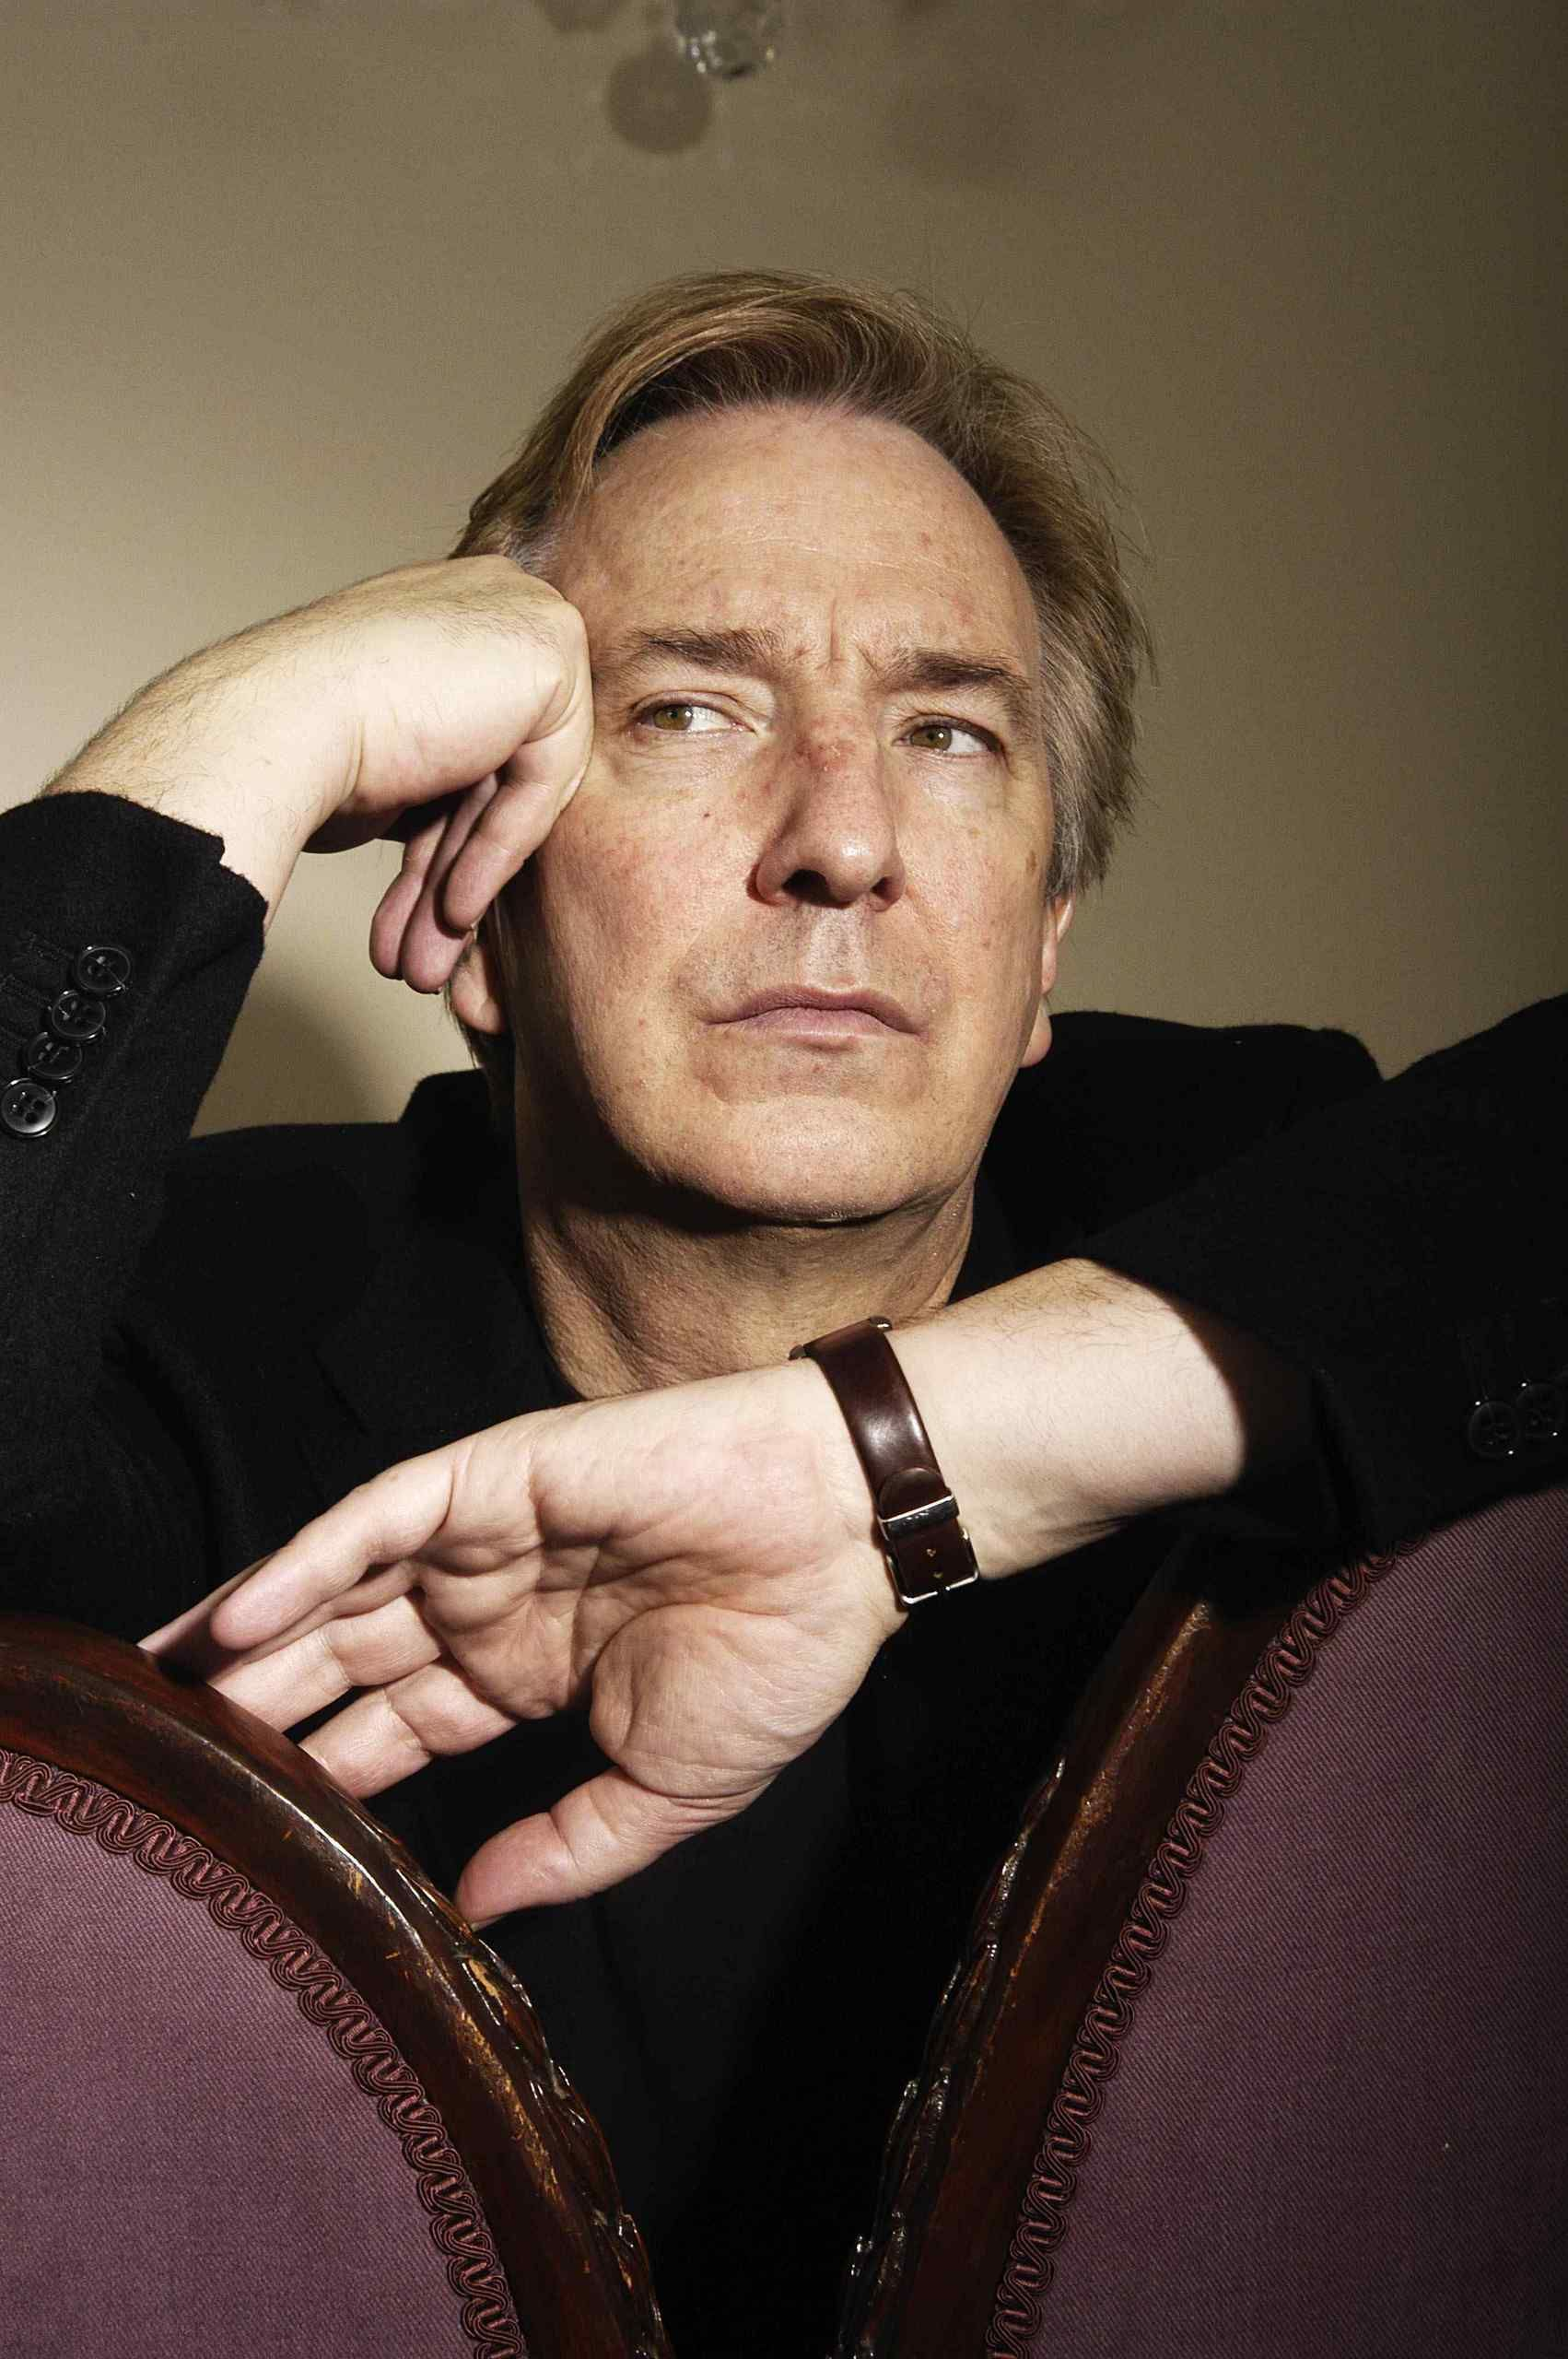 alan rickman harry potteralan rickman voice, alan rickman always, alan rickman harry potter, alan rickman death, alan rickman gif, alan rickman movies, alan rickman quotes, alan rickman dogma, alan rickman wife, alan rickman tumblr, alan rickman died, alan rickman умер, alan rickman wikipedia, alan rickman severus snape, alan rickman twitter, alan rickman art, alan rickman fan art, alan rickman intelligence, alan rickman instagram, alan rickman wiki